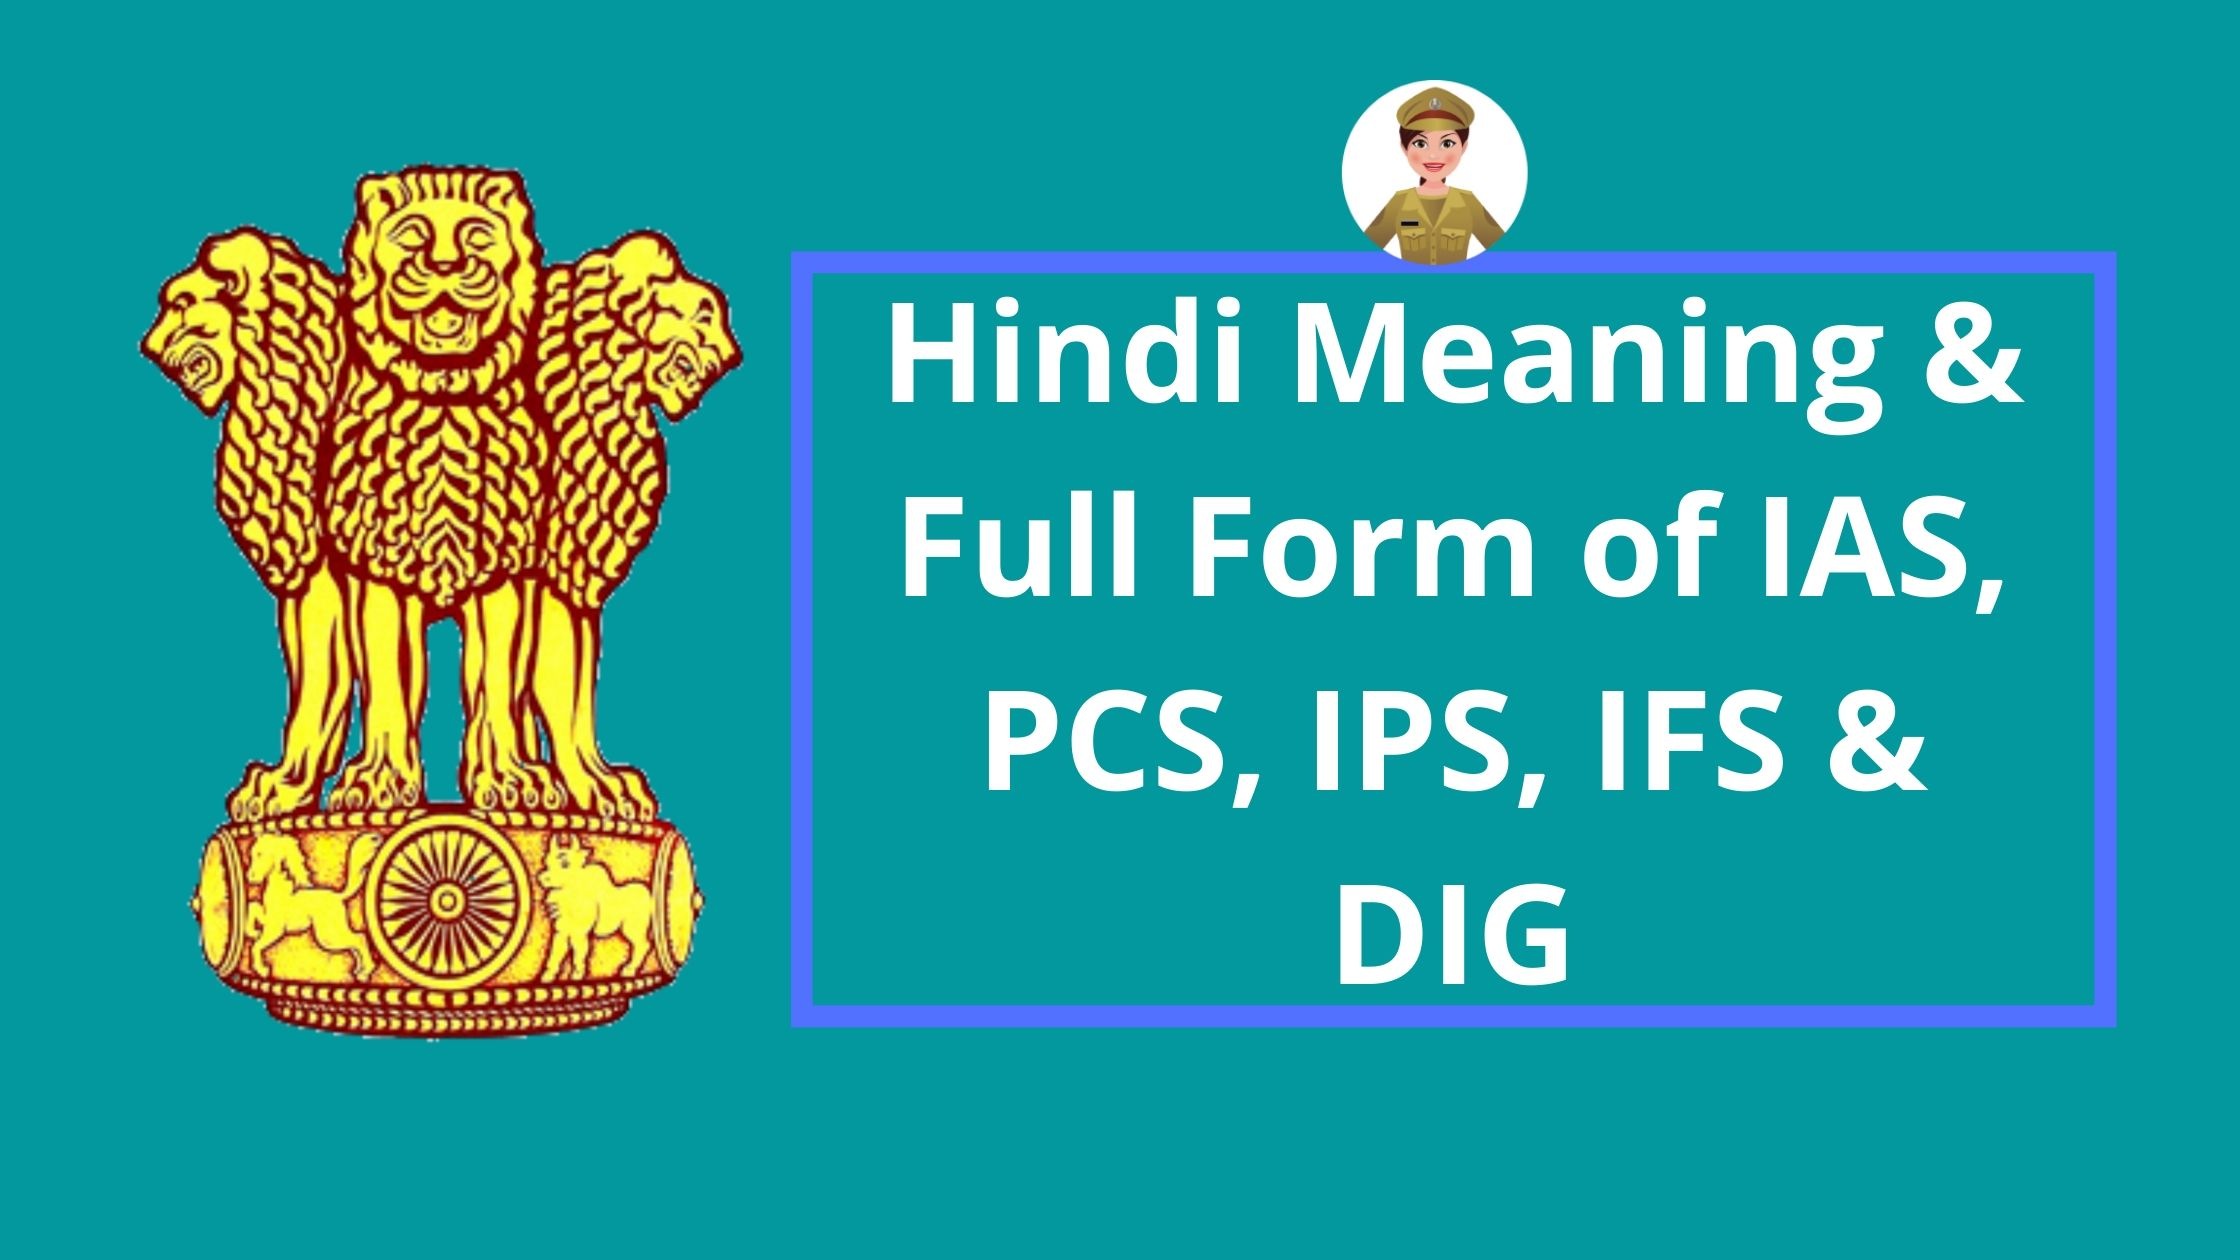 Hindi Meaning & Full Form of IAS, PCS, IPS, IFS & DIG